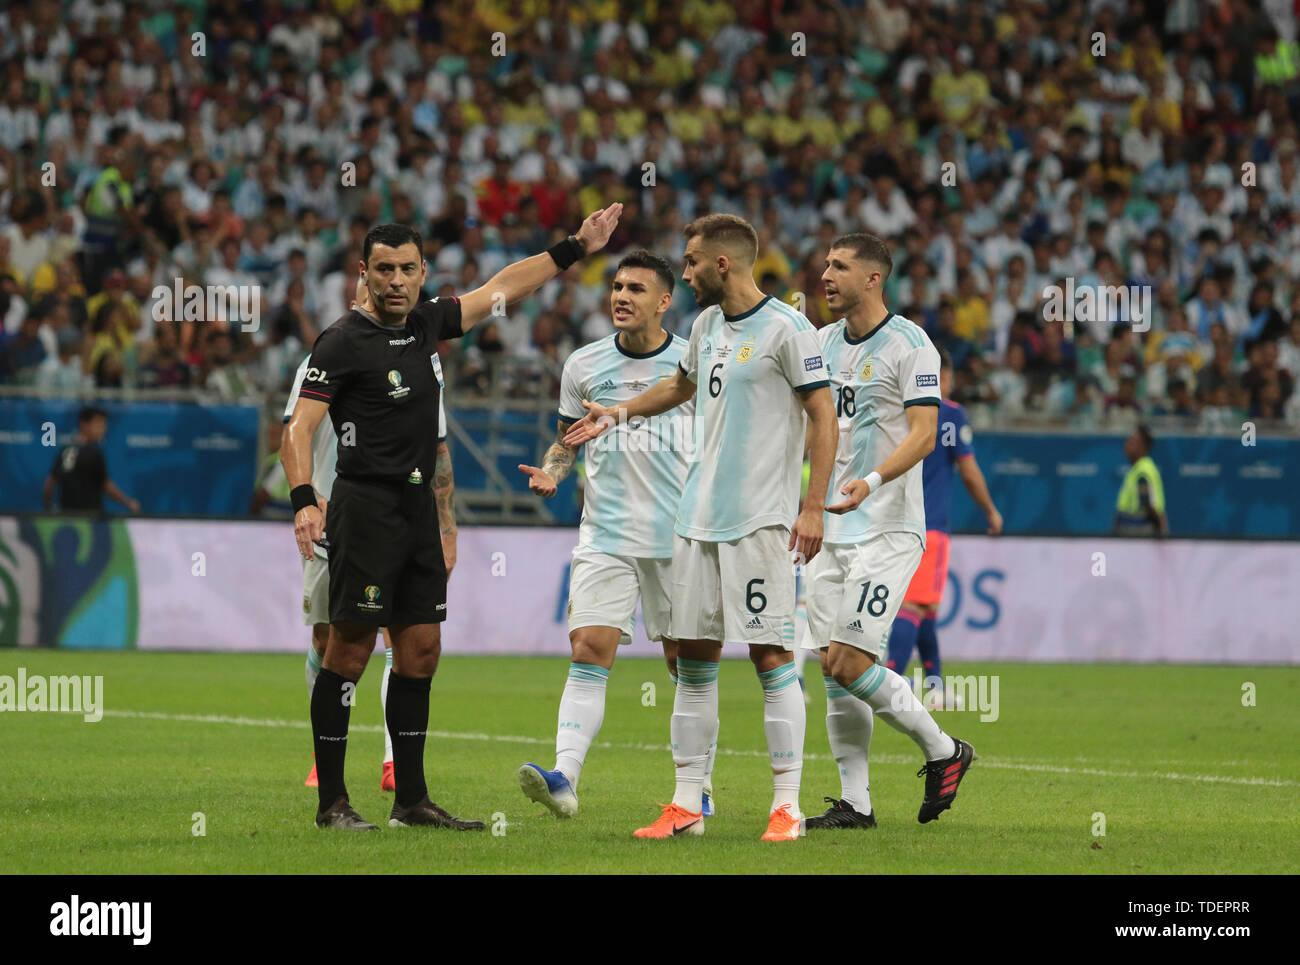 Salvador, Brazil. 15th June, 2019. Argentina v Colombia, valid for the 2019 Copa America group stage, held this Saturday (15th) at the Fonte Nova Arena in Salvador, Bahia, Brazil. Credit: Tiago Caldas/FotoArena/Alamy Live News Stock Photo